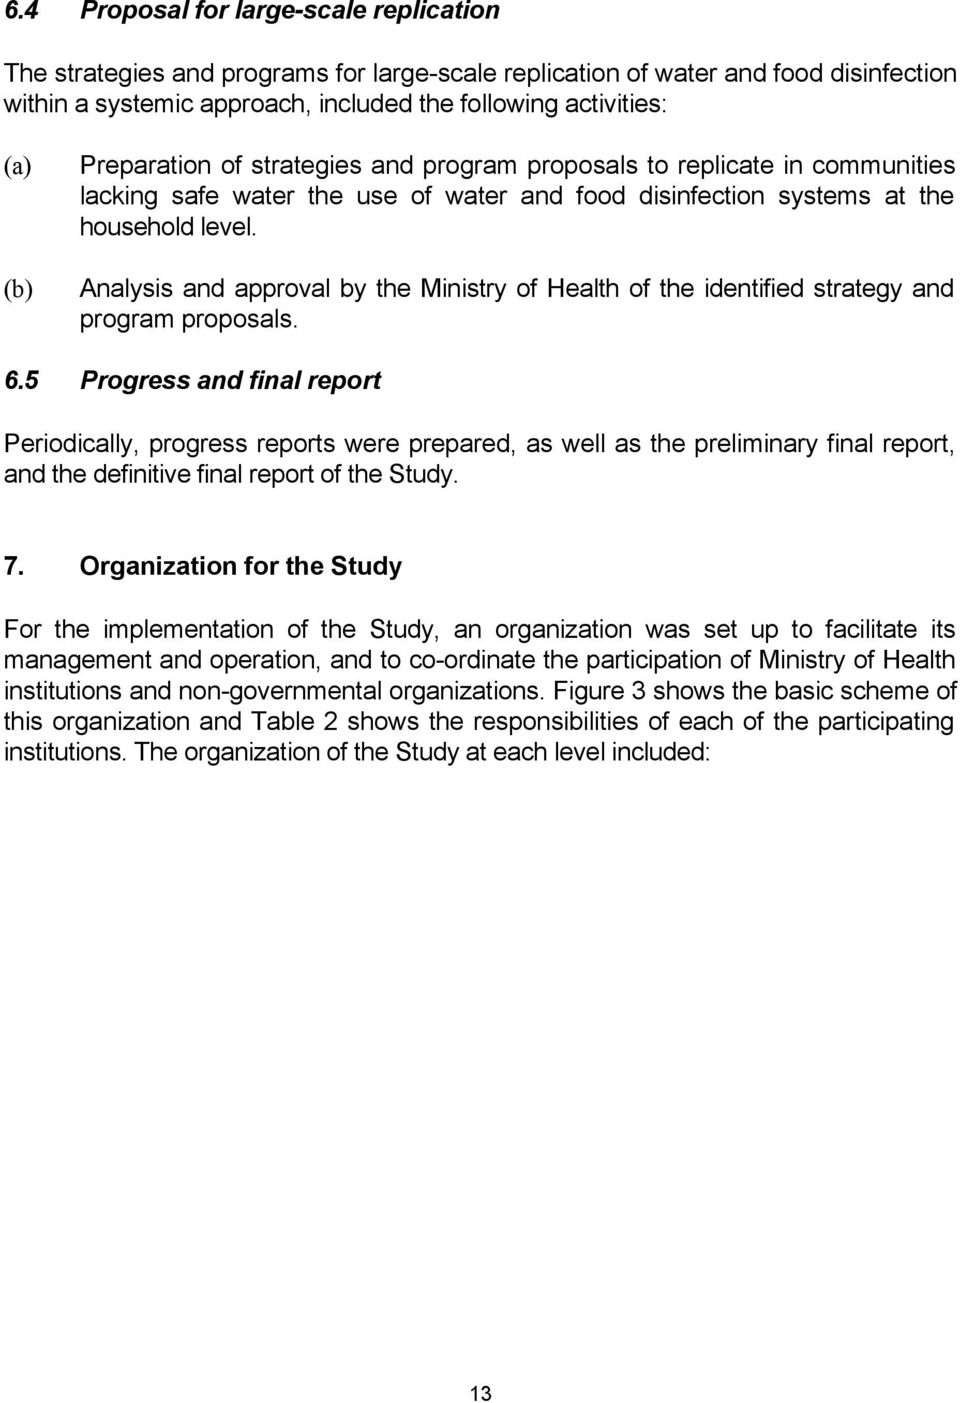 Analysis and approval by the Ministry of Health of the identified strategy and program proposals. 6.